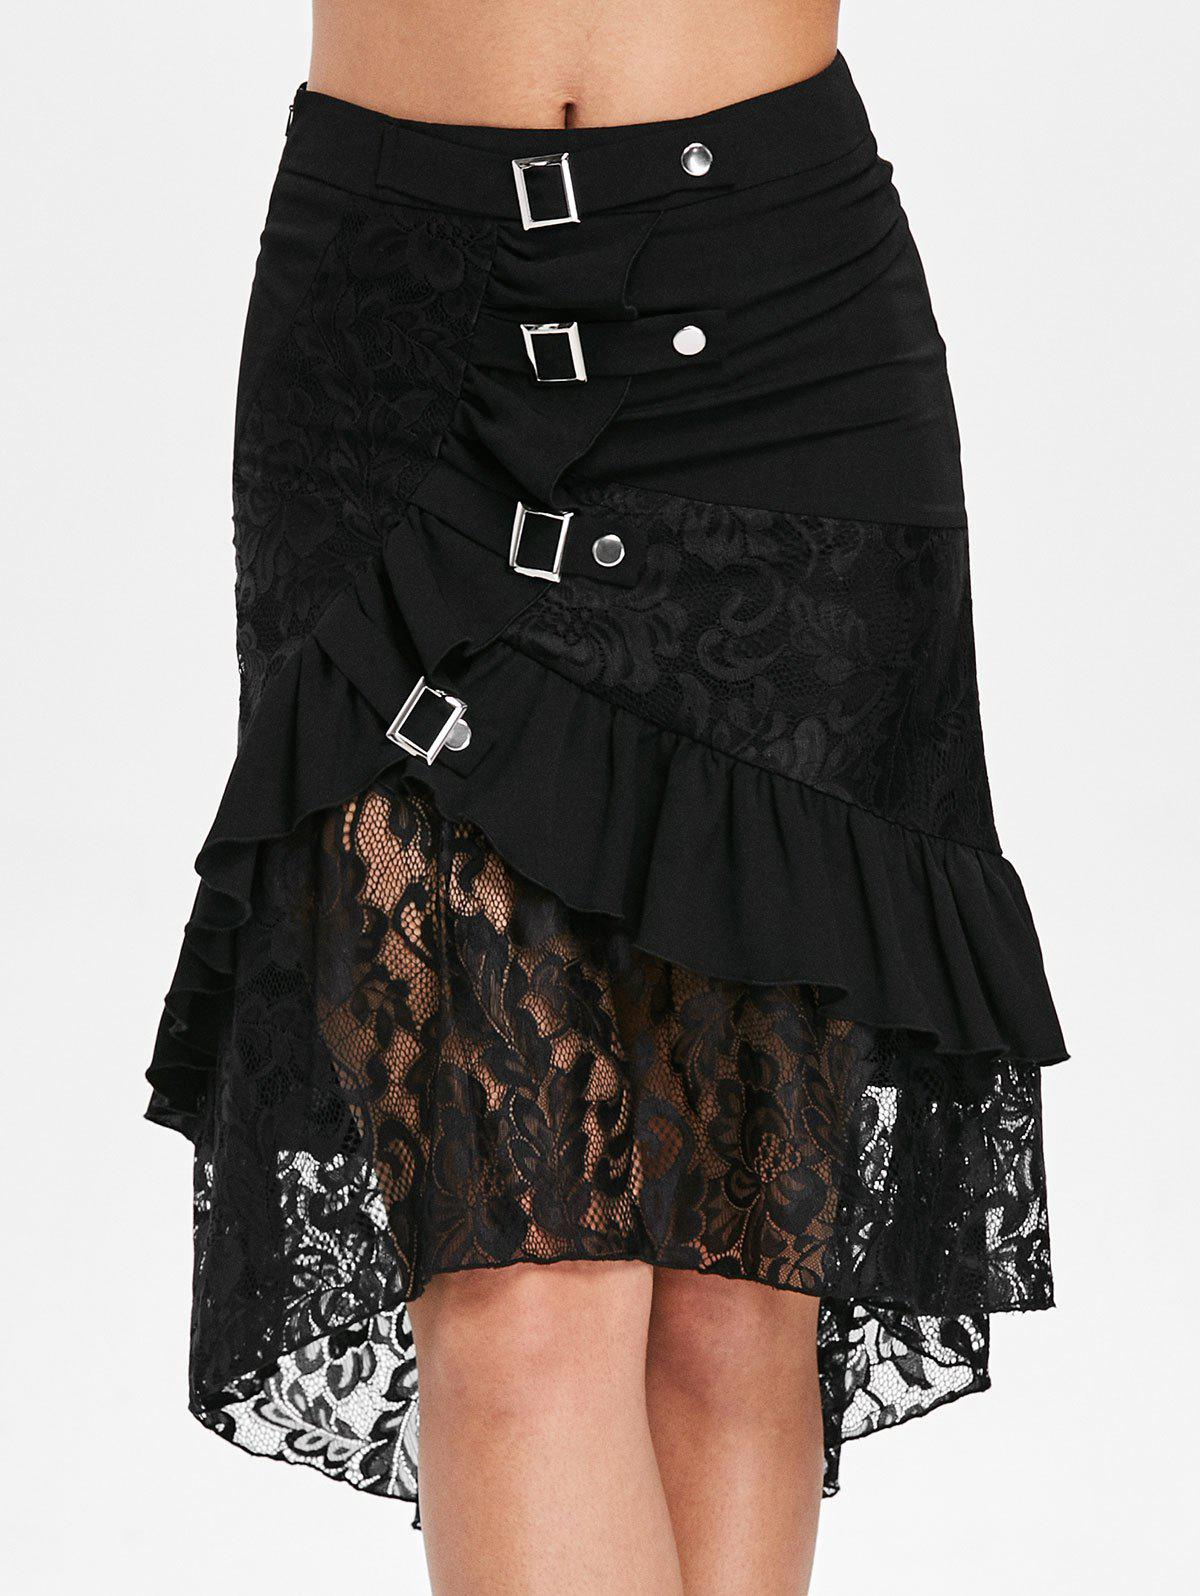 Fancy Lace Trim Ruffle High Low Skirt